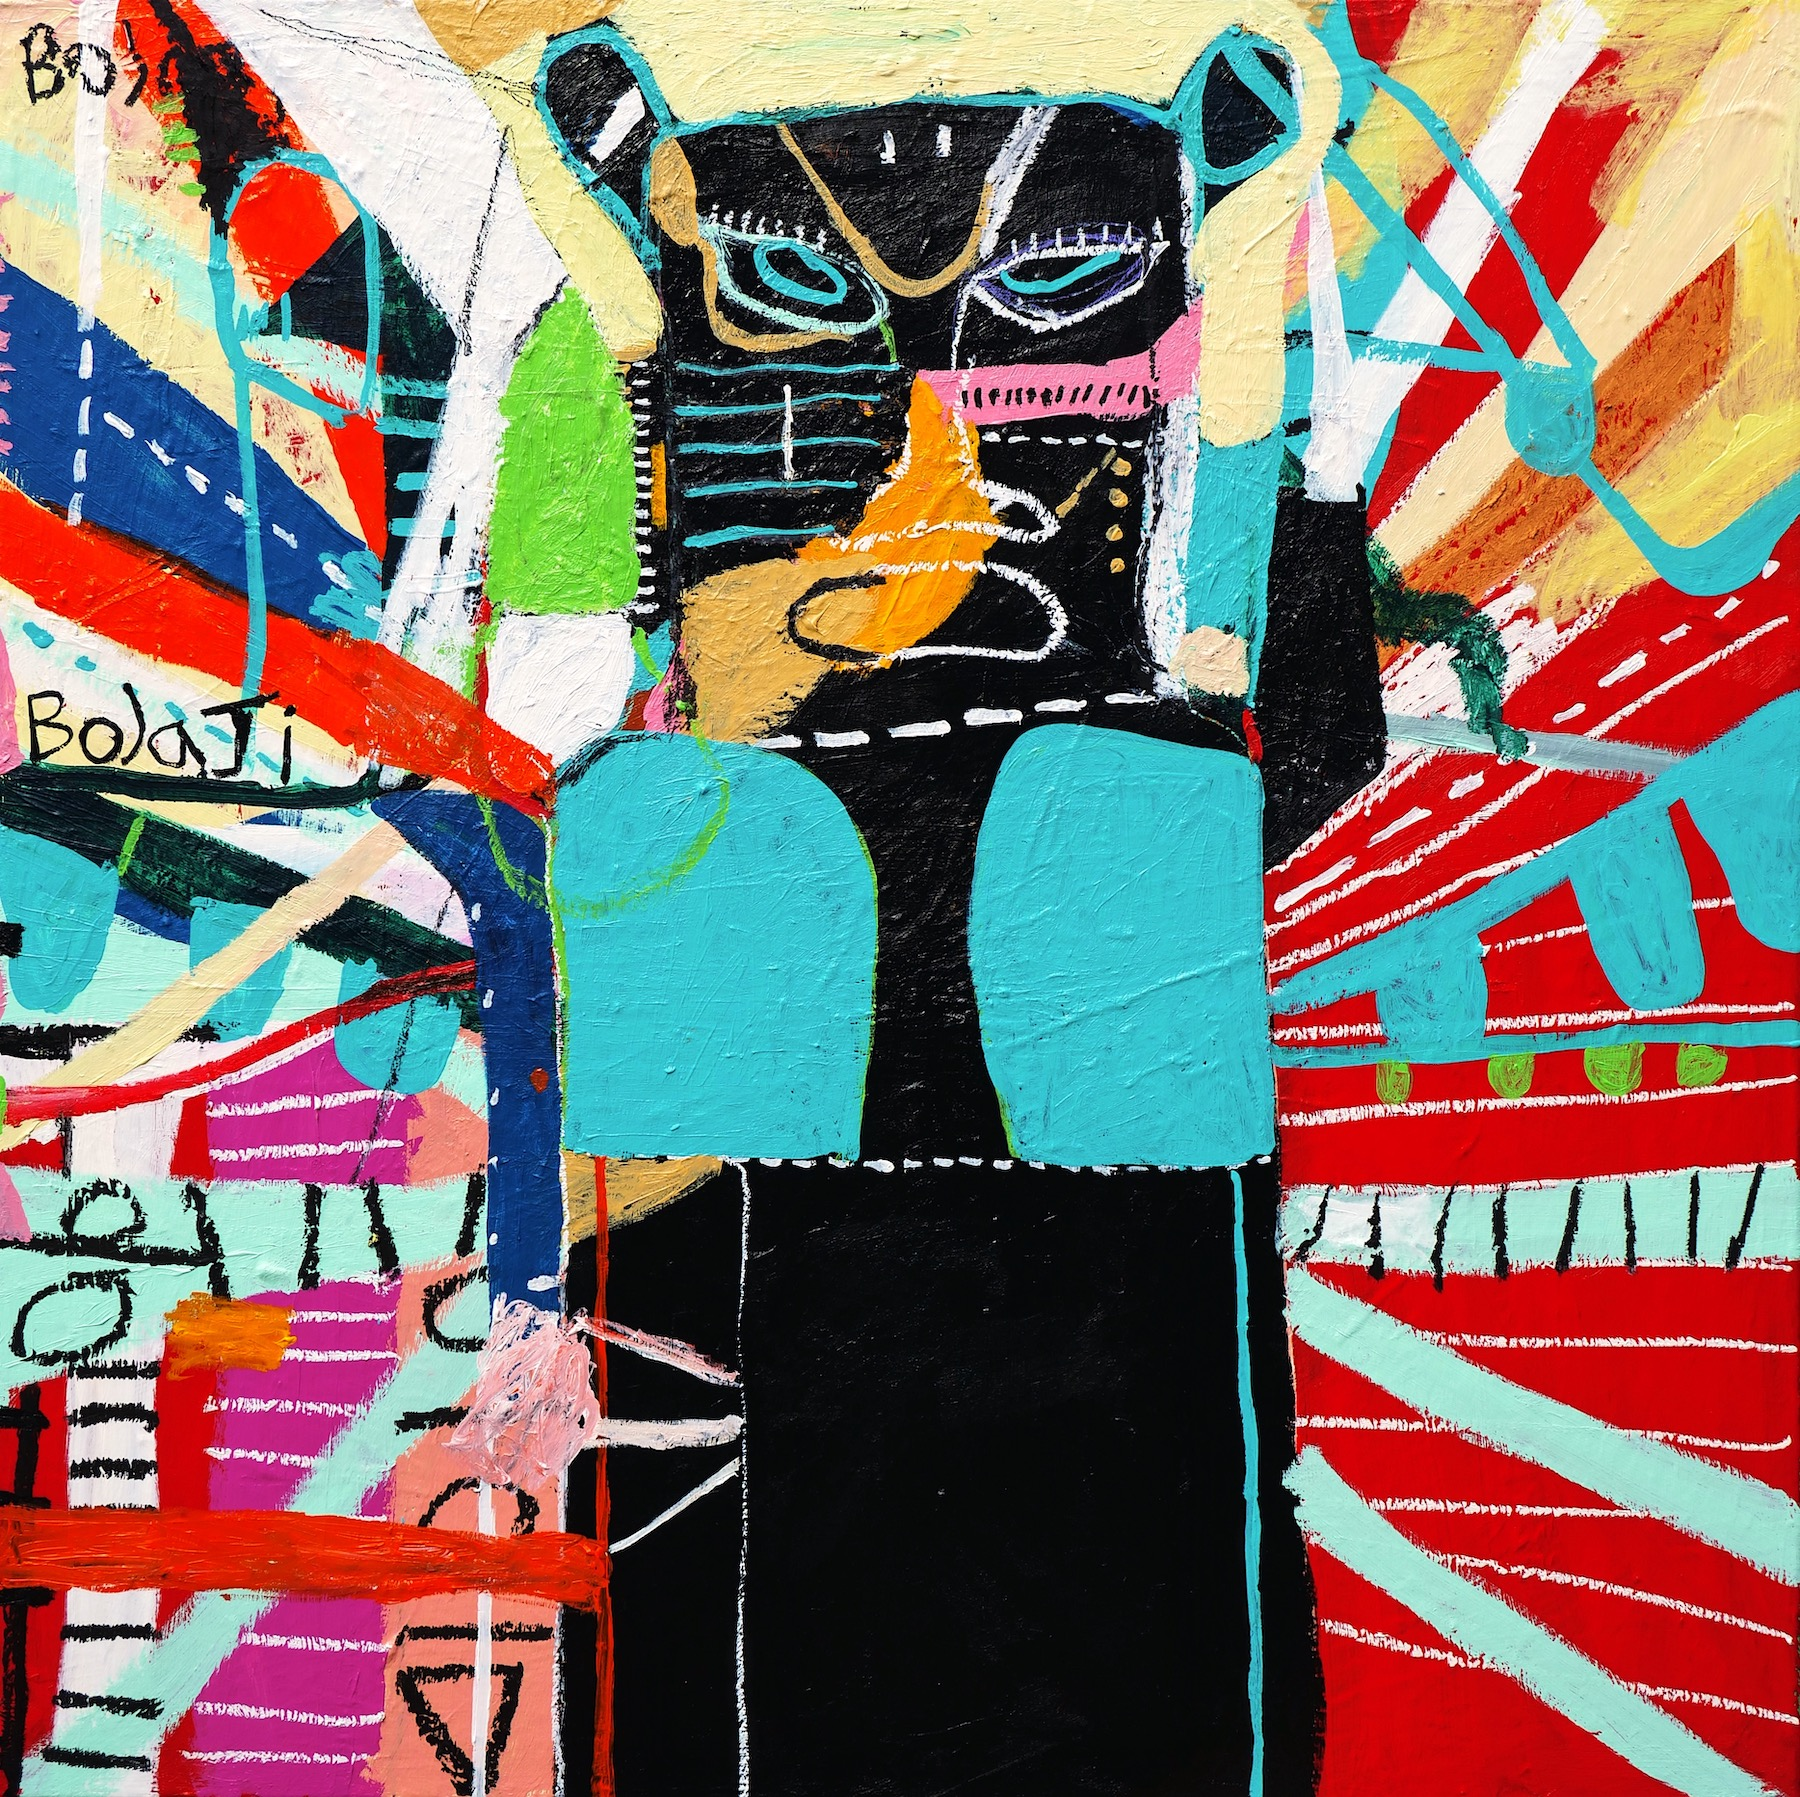 """Adébayo Bolaji, """"Duro"""" (2021), Acrylic, Oil Pastel and Crayon on Cotton. Courtesy of BEERS London"""